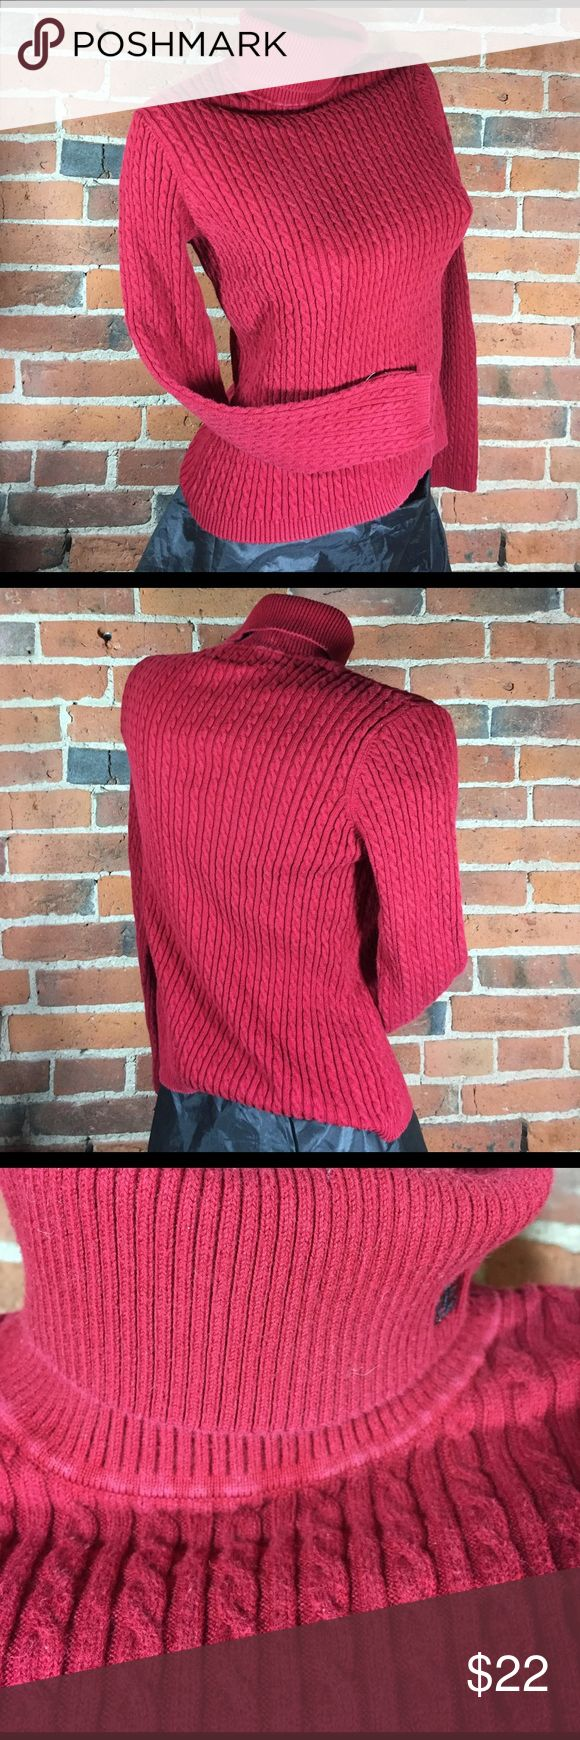 """Ralph Lauren Turtleneck Sweater Red Cable Knit Ralph Lauren women's turtleneck sweater Red cable knit Embroidered logo on collar 89% cotton / 9% nylon / 2% lycra Excellent gently used condition -- minor wear on neck seam, see photos Chest 32"""" (stretches) Length 22"""" Sleeves 22"""" Ralph Lauren Sweaters Cowl & Turtlenecks"""